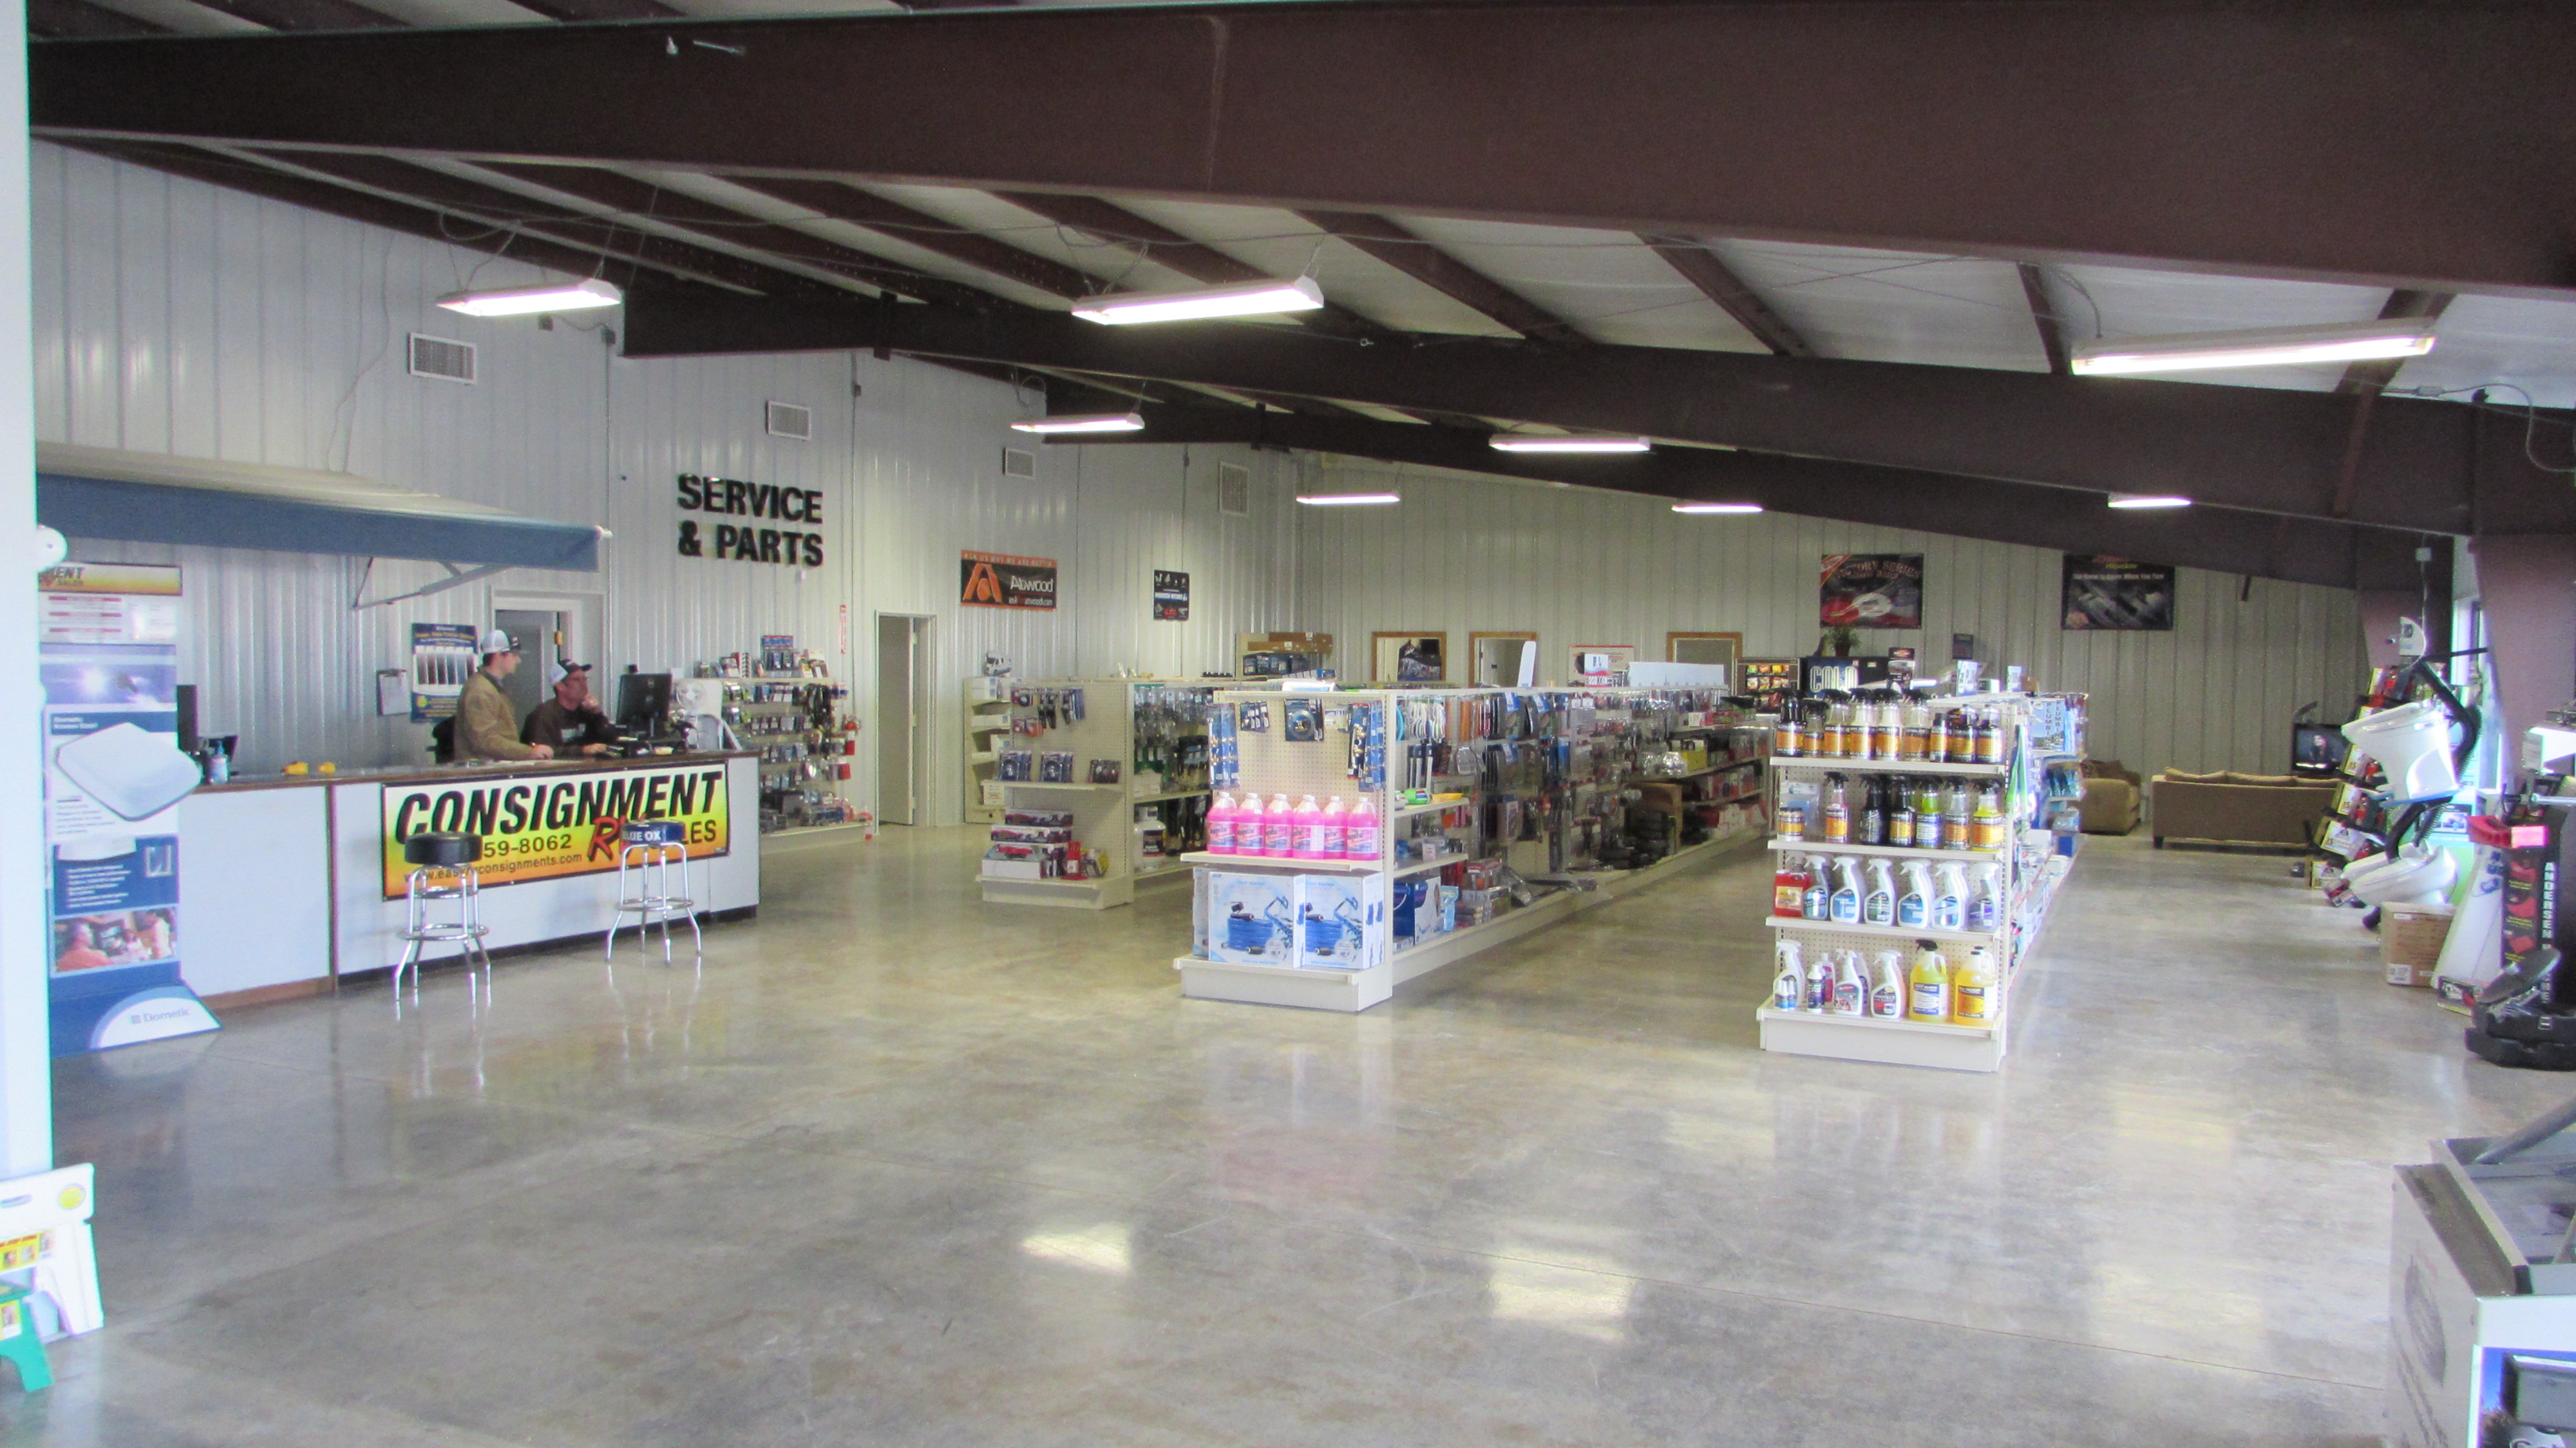 Consignment RV Sales Service Department